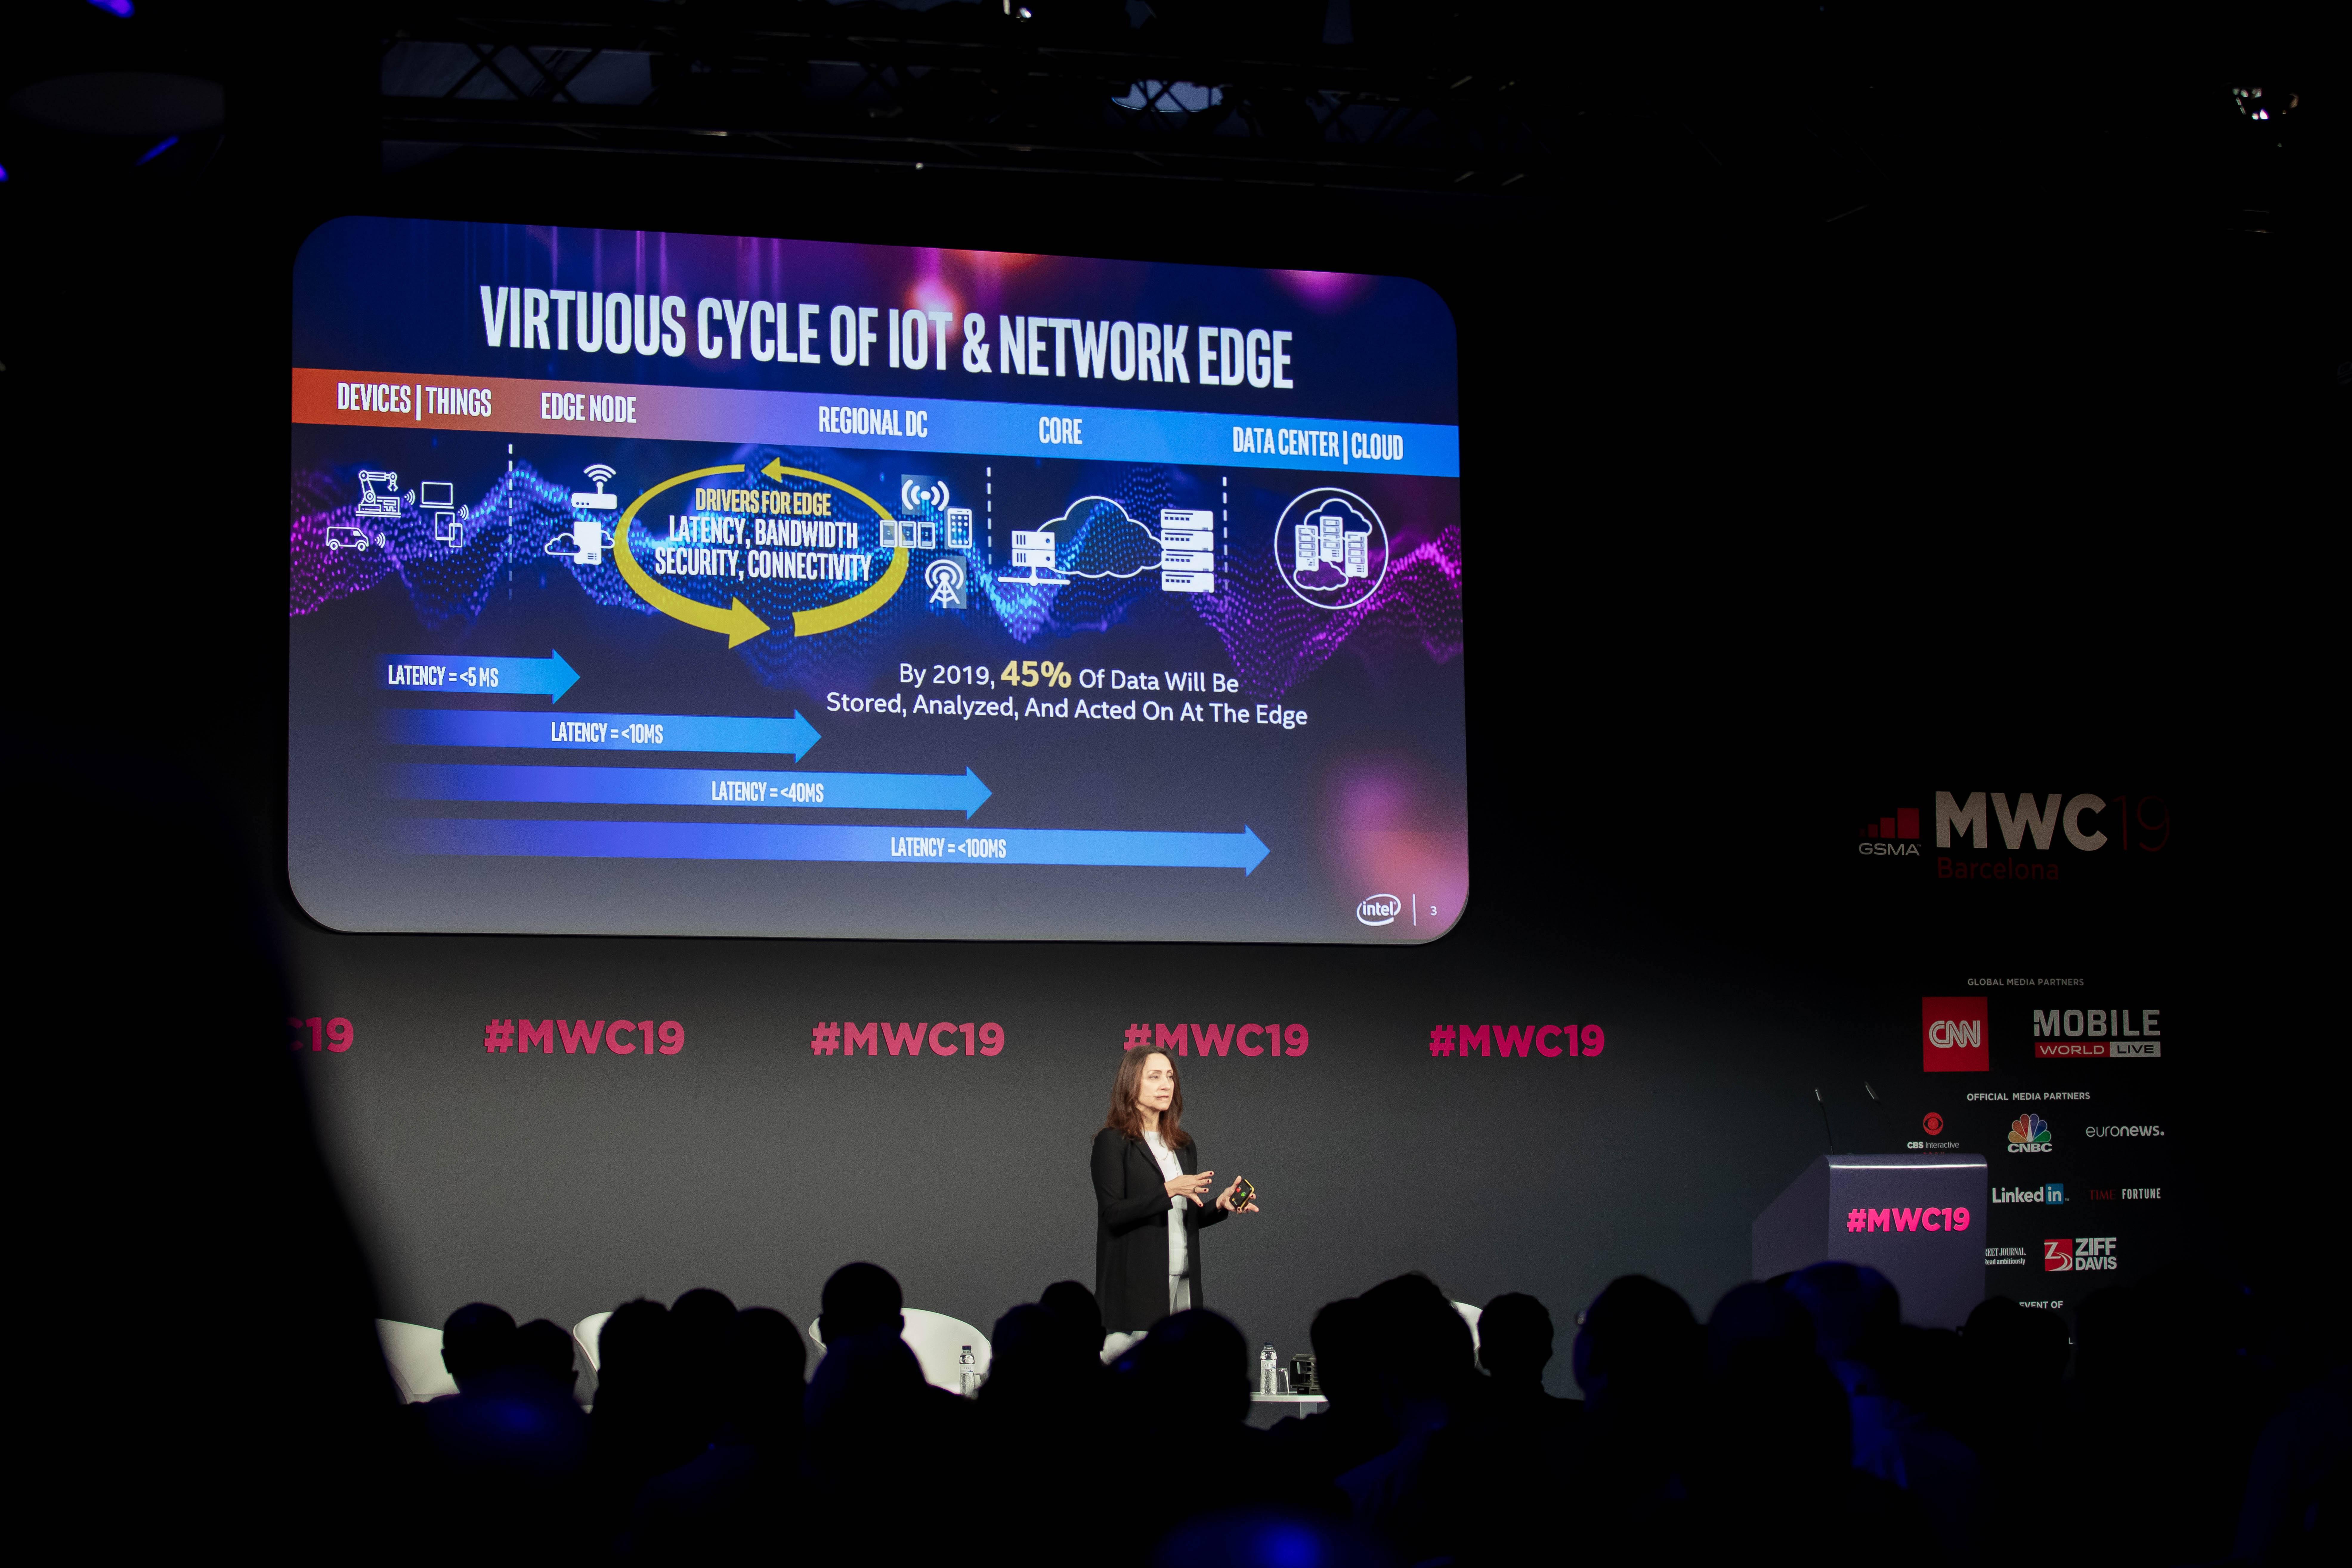 """DAY 1: Sandra Rivera, Intel senior vice president and general manager of the Network Platforms Group, speaks Monday, Feb. 25, 2019, during """"The Edge Computing Opportunity: Intelligent & Distributed"""" event at MWC 2019. Intel showcase its latest technologies in 5G and networking from Feb. 25-28, 2019, at Mobile World Congress 2019 in Barcelona. (Credit: Intel Corporation)"""